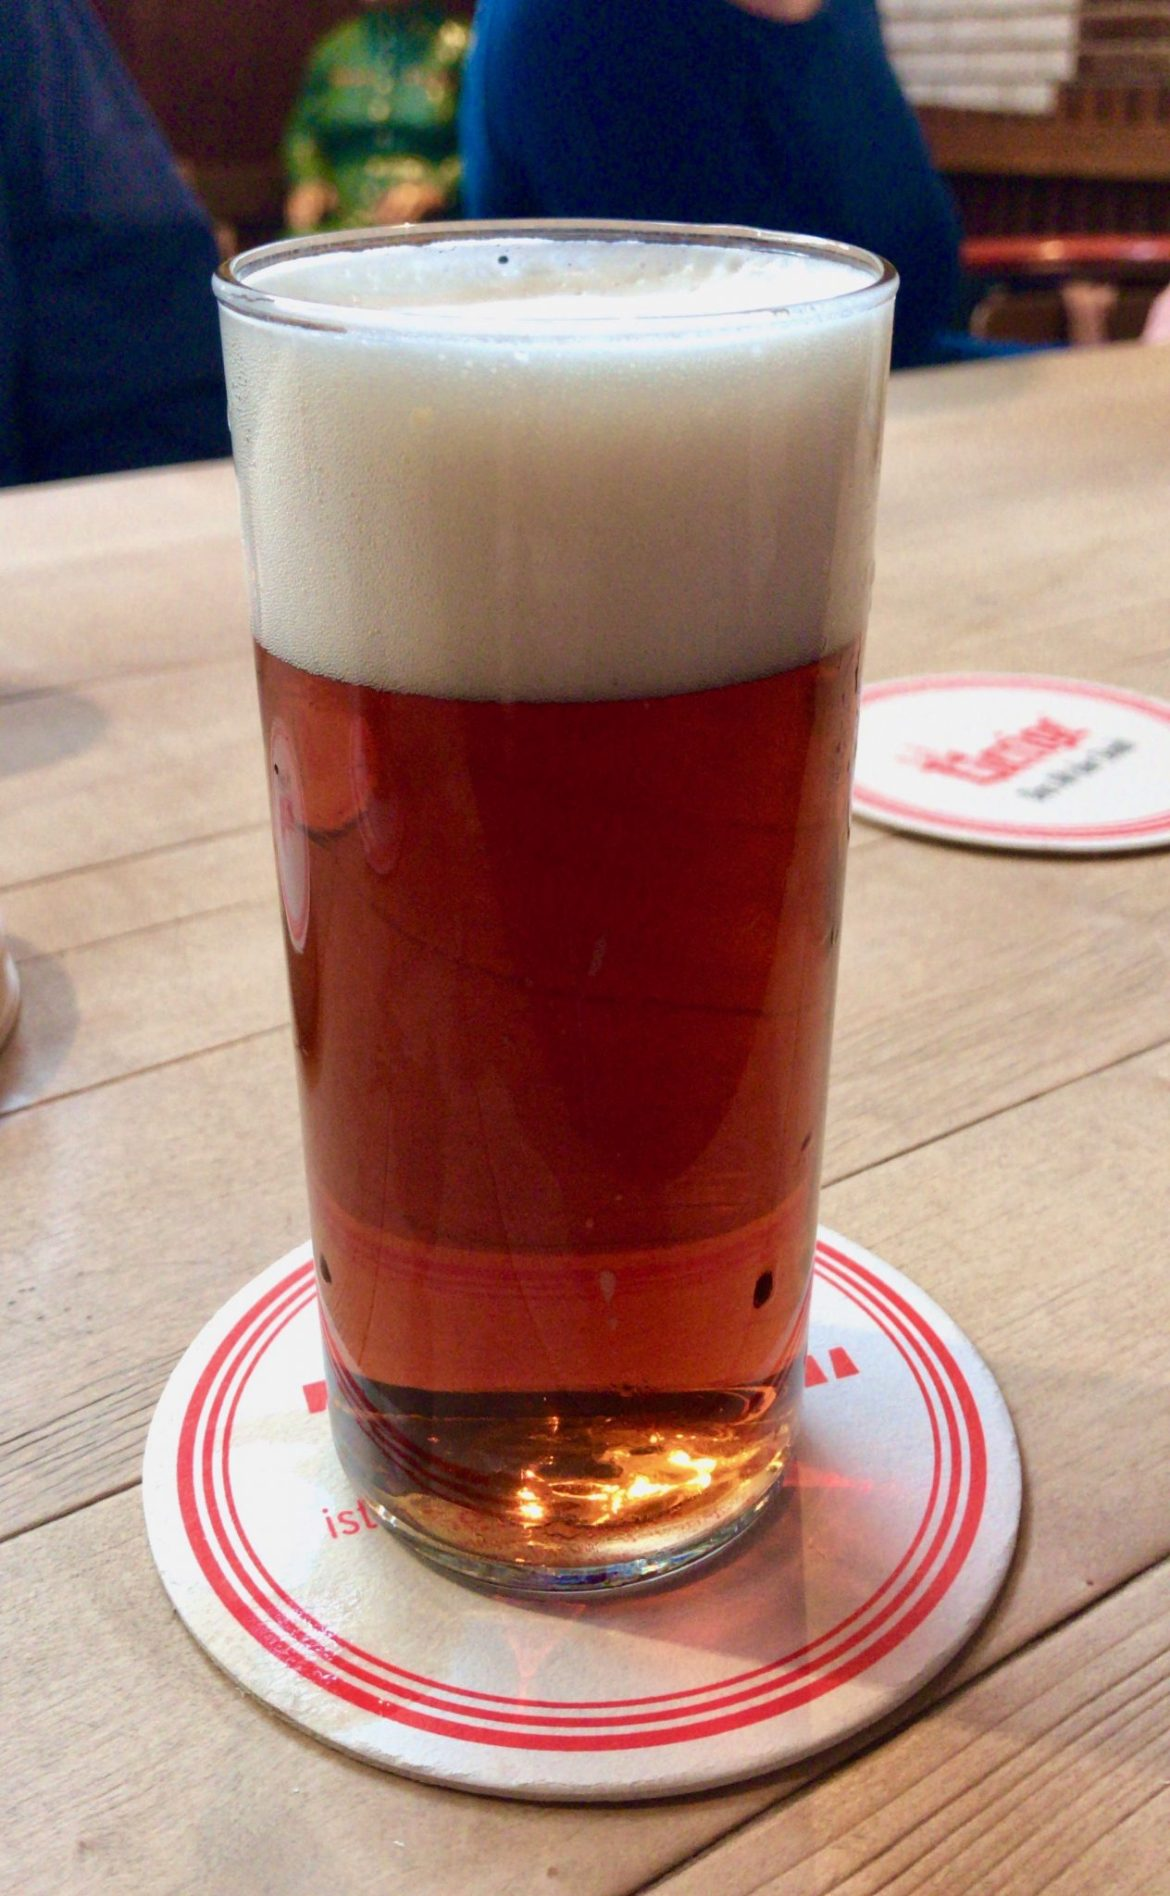 A glass of Altbier on a wooden table